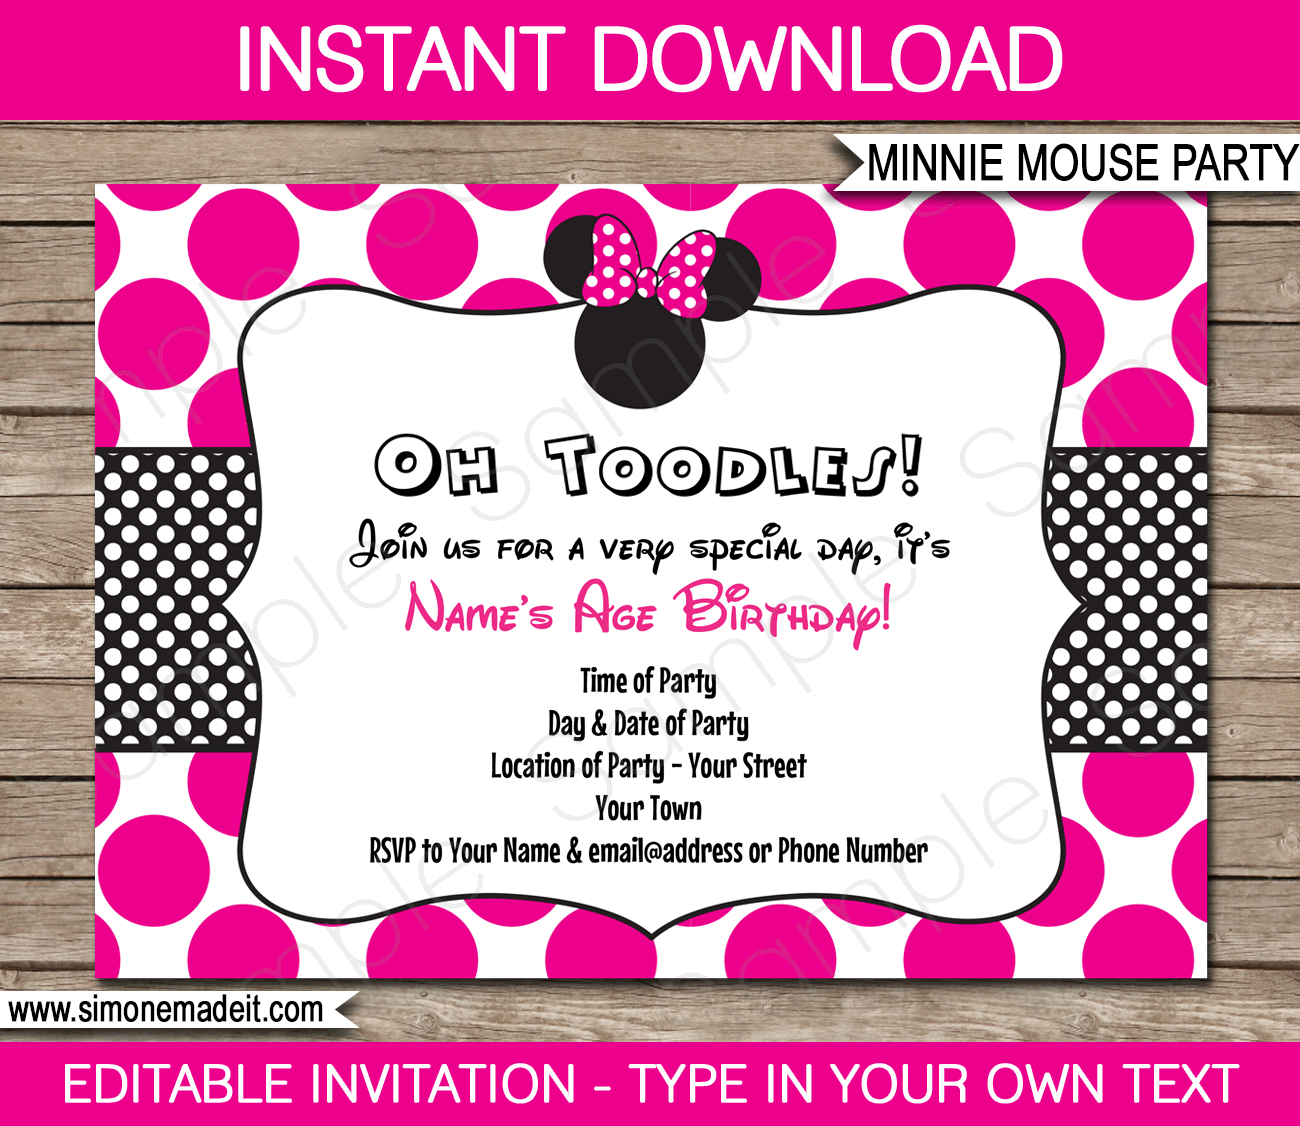 Minnie Mouse Party Invitations Template   Birthday Party - Free Printable Minnie Mouse Party Invitations